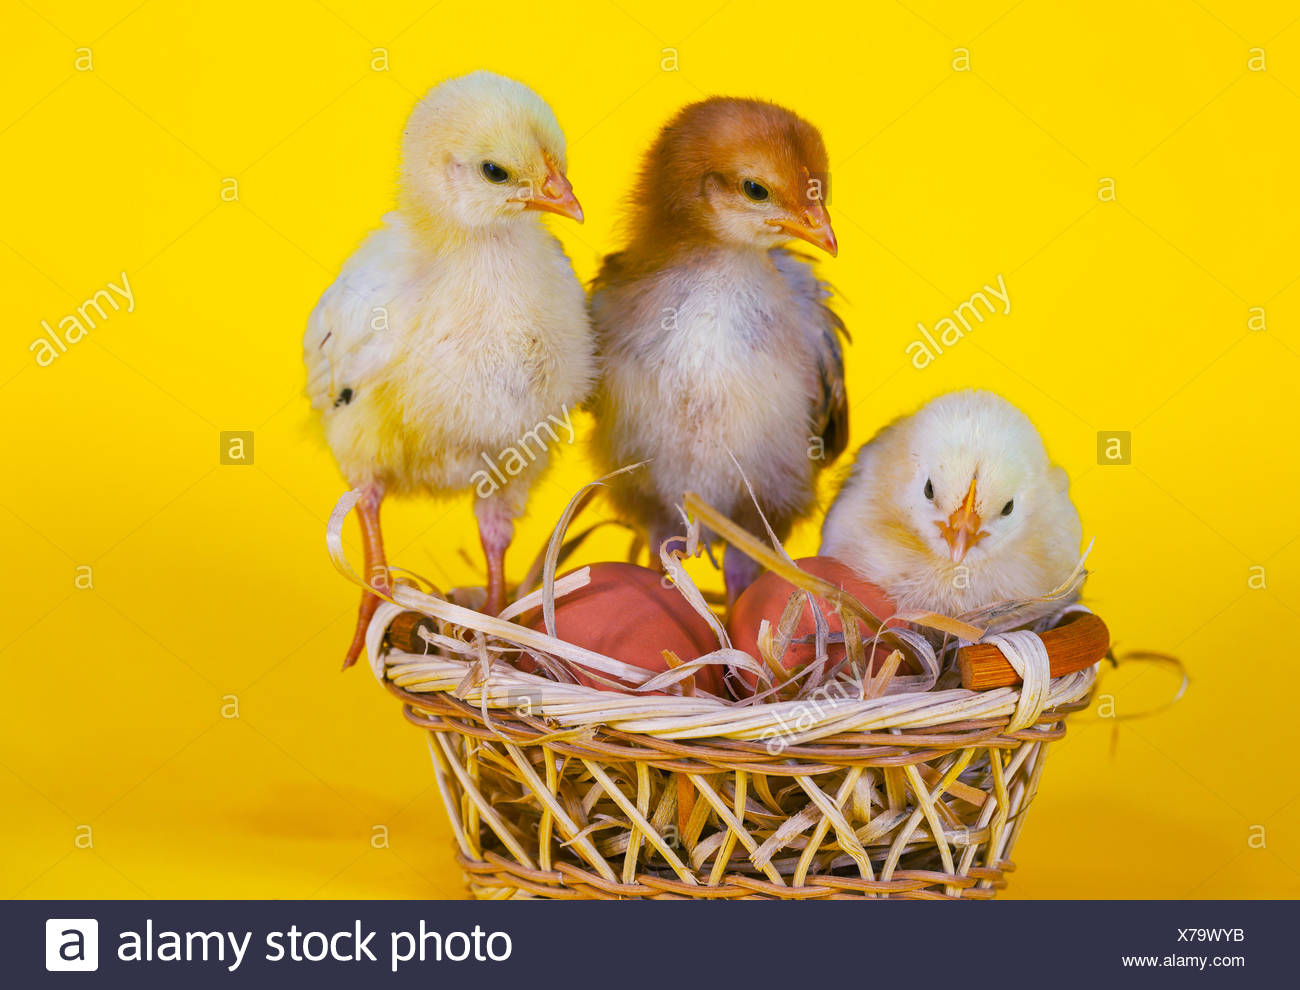 Small baby chickens with Easter eggs - Stock Image